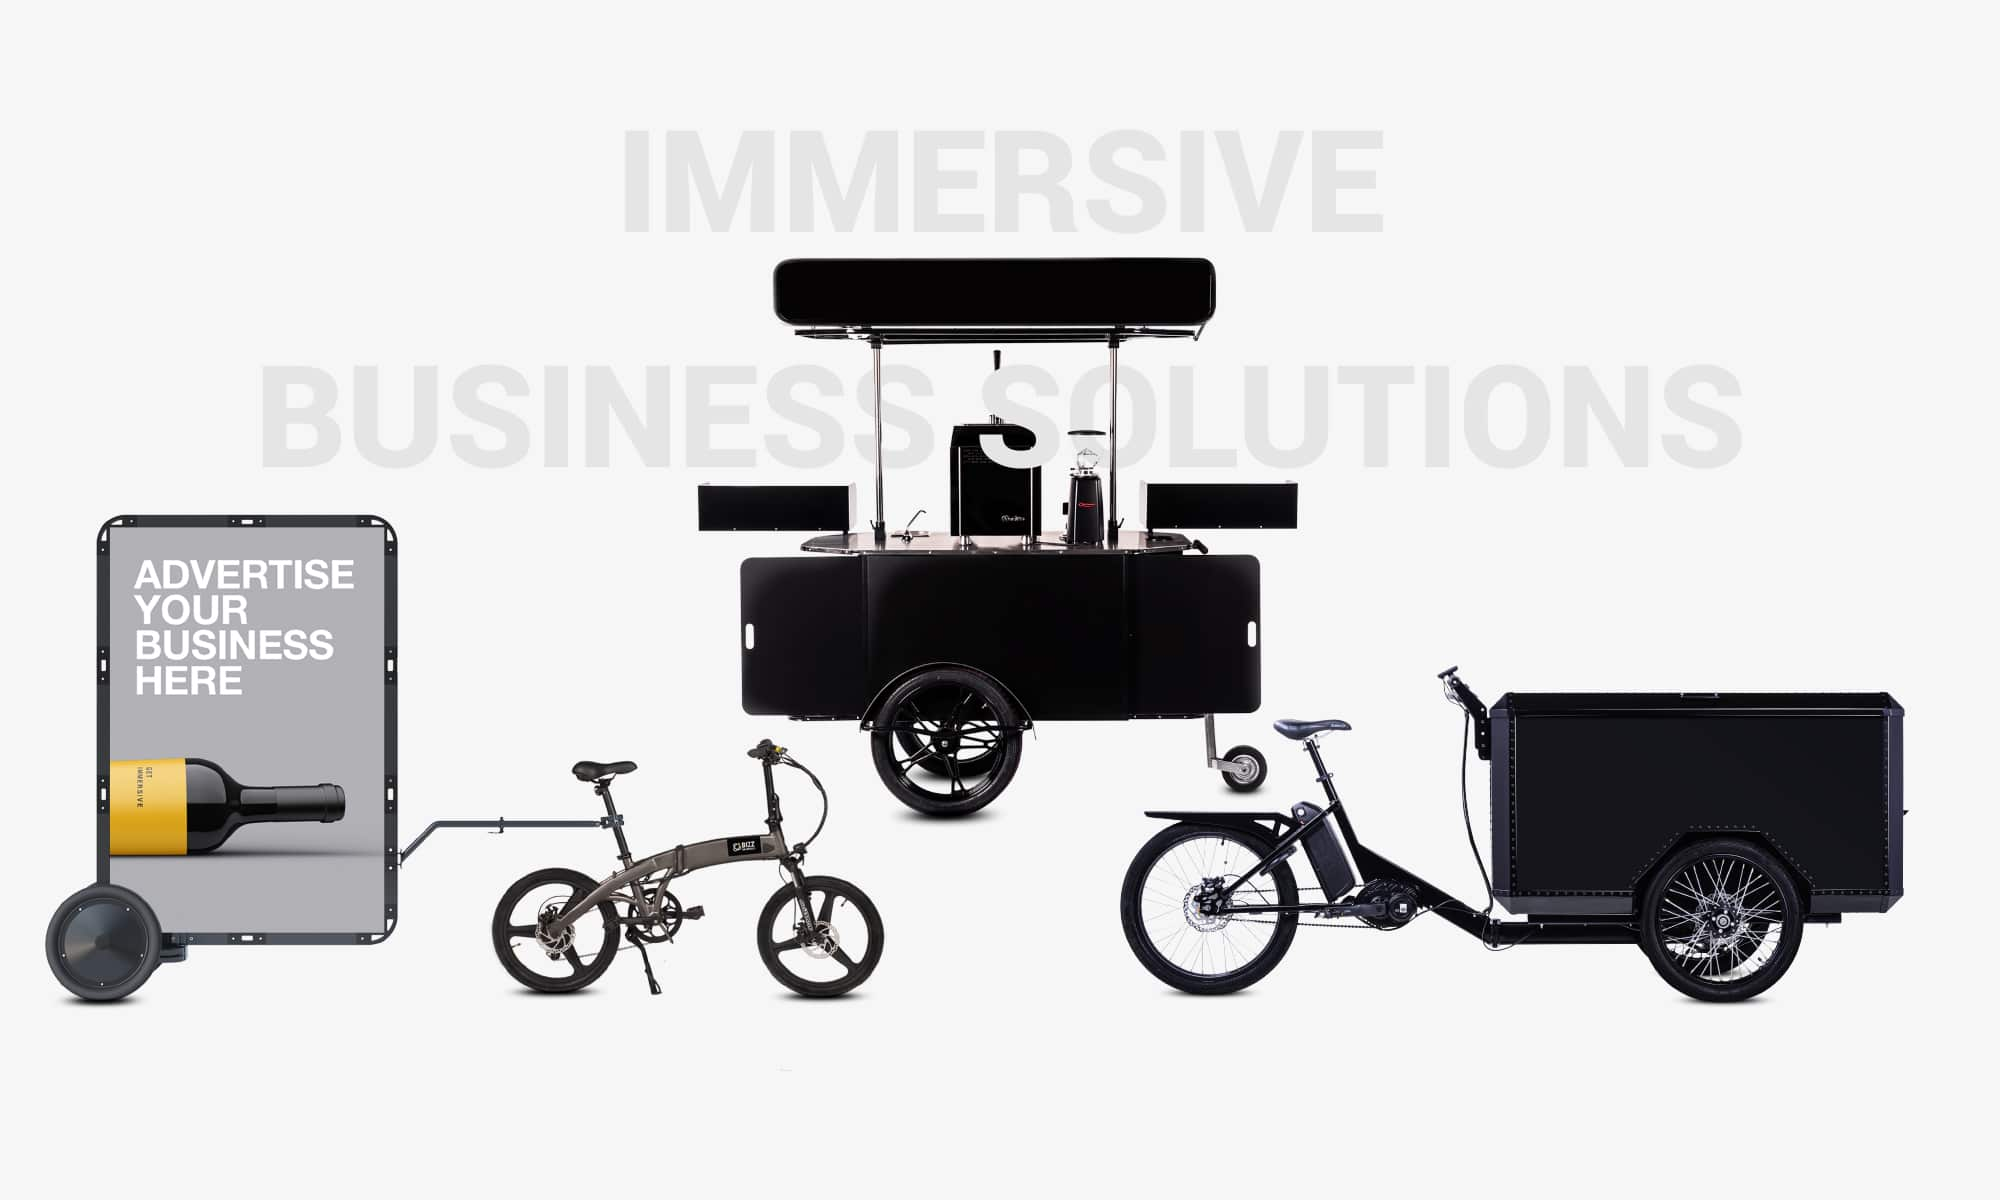 Food carts cargo bikes and mobile billboards by Bizz On Wheels